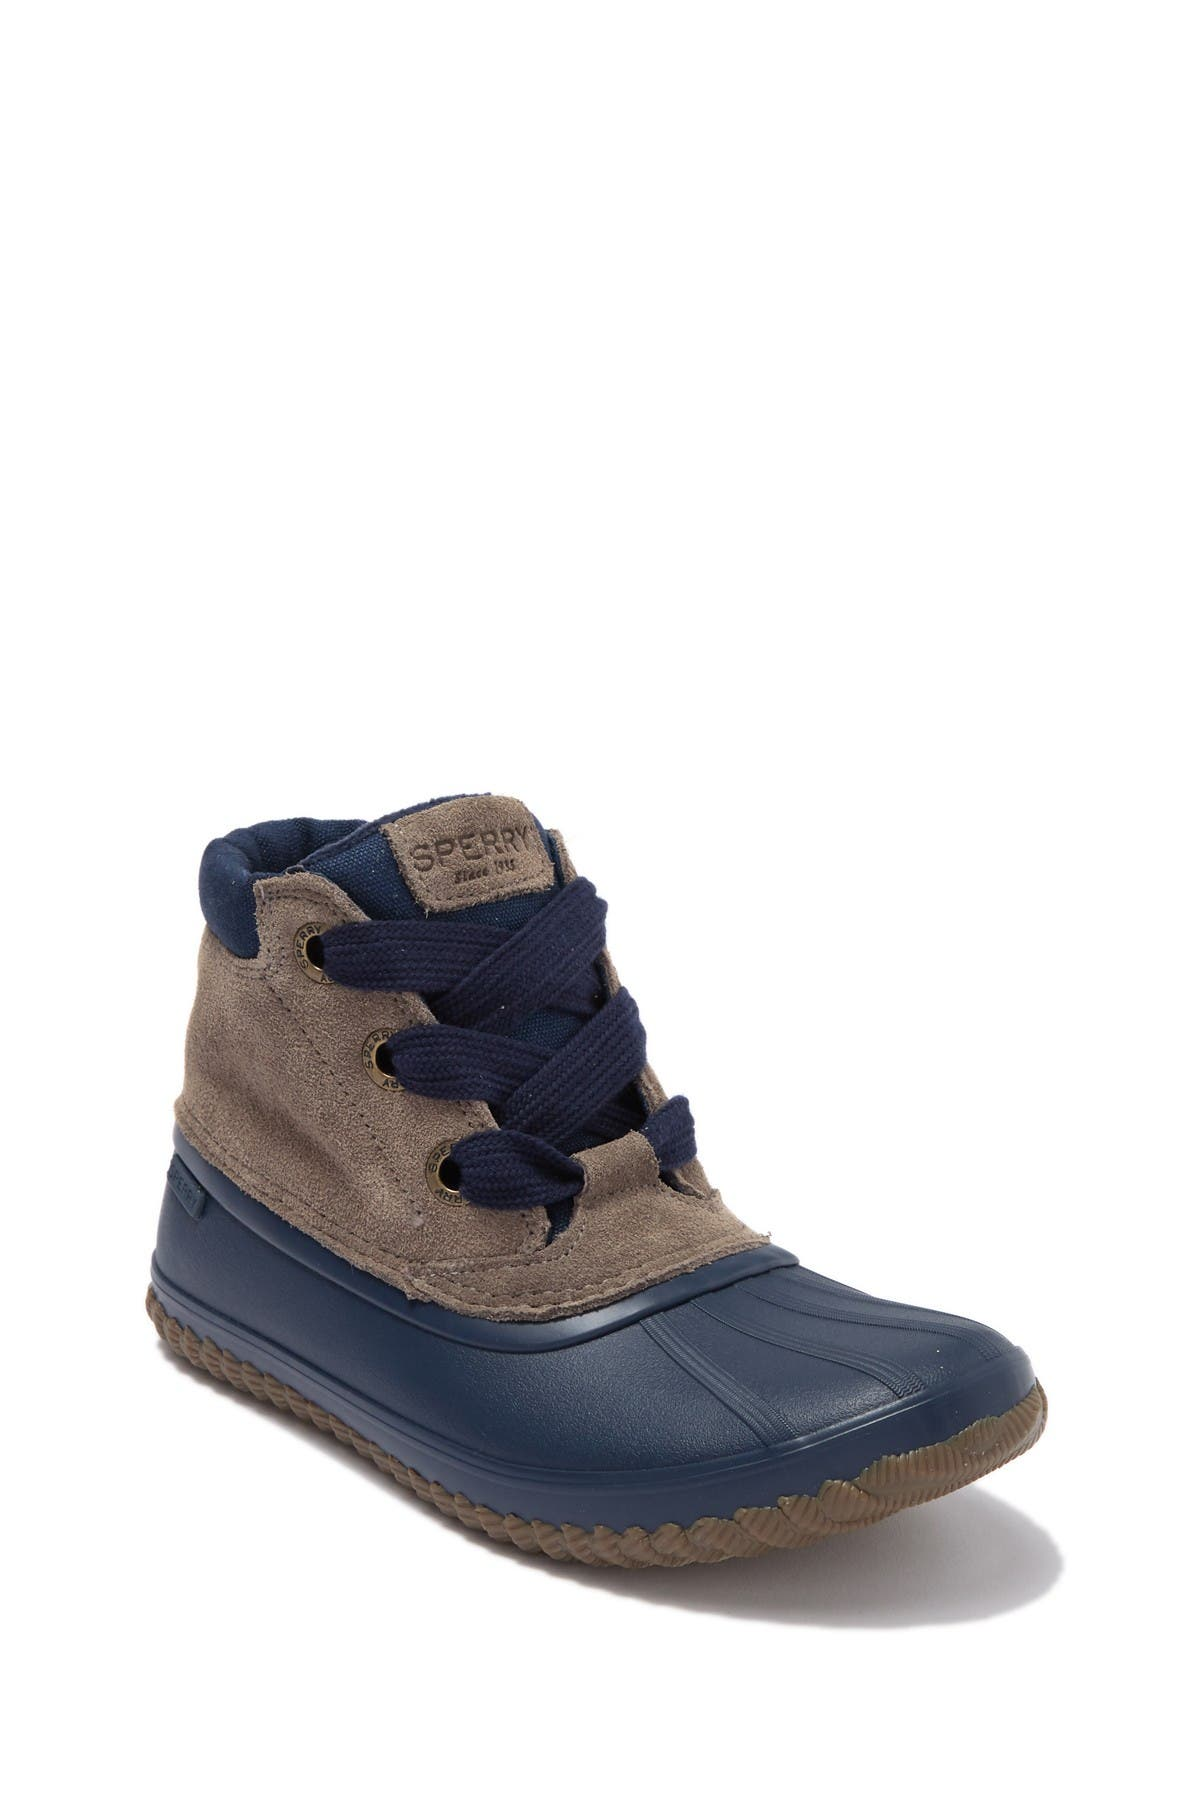 Image of Sperry Breakwater Suede Duck Boot